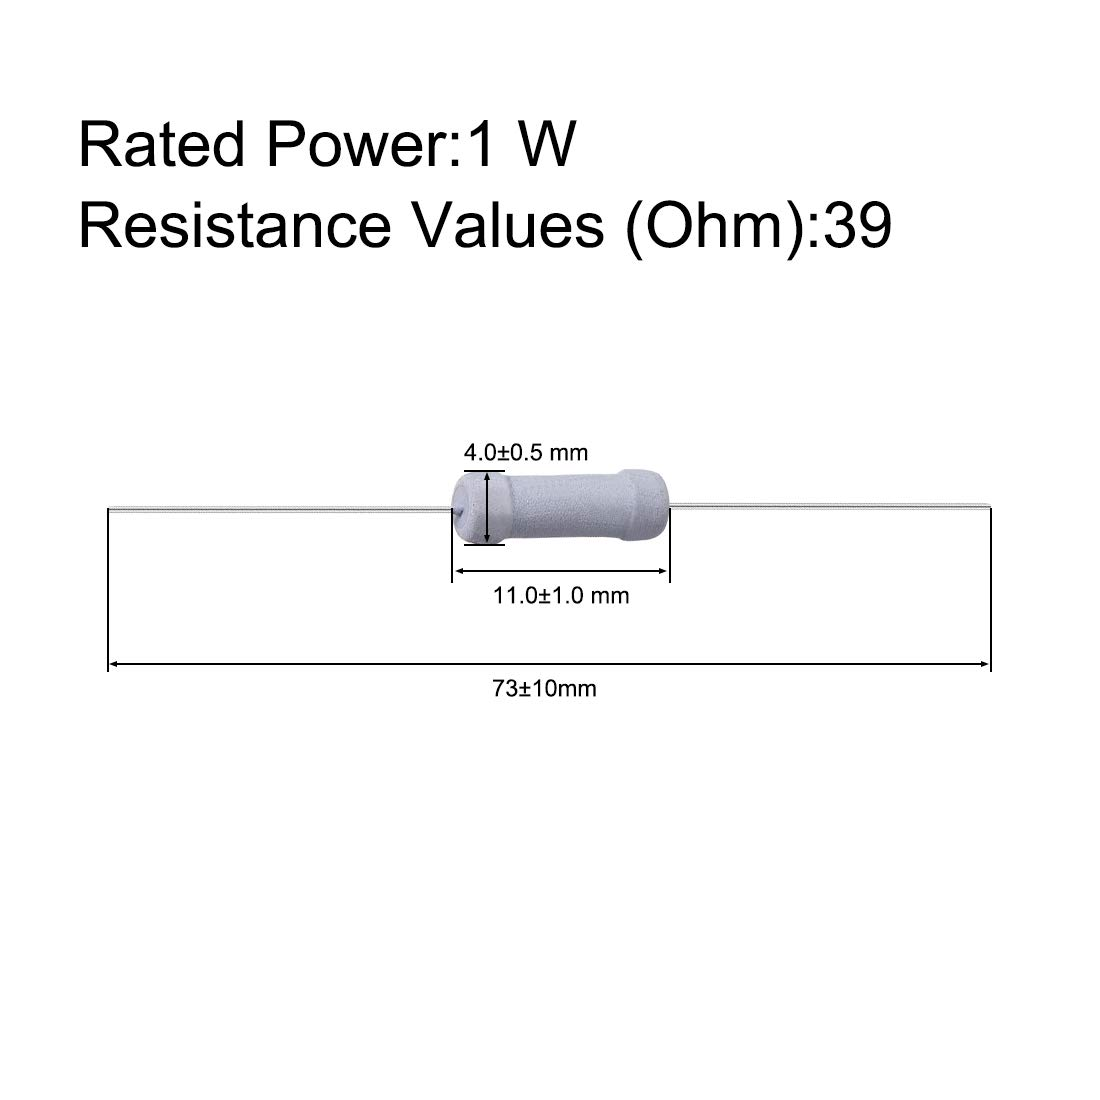 39 Ohm Resistance for DIY Electronic Projects and Experiments Axial Lead 1W uxcell 100 Pcs Metal Oxide Film Resistor 5/% Tolerance Flame Proof